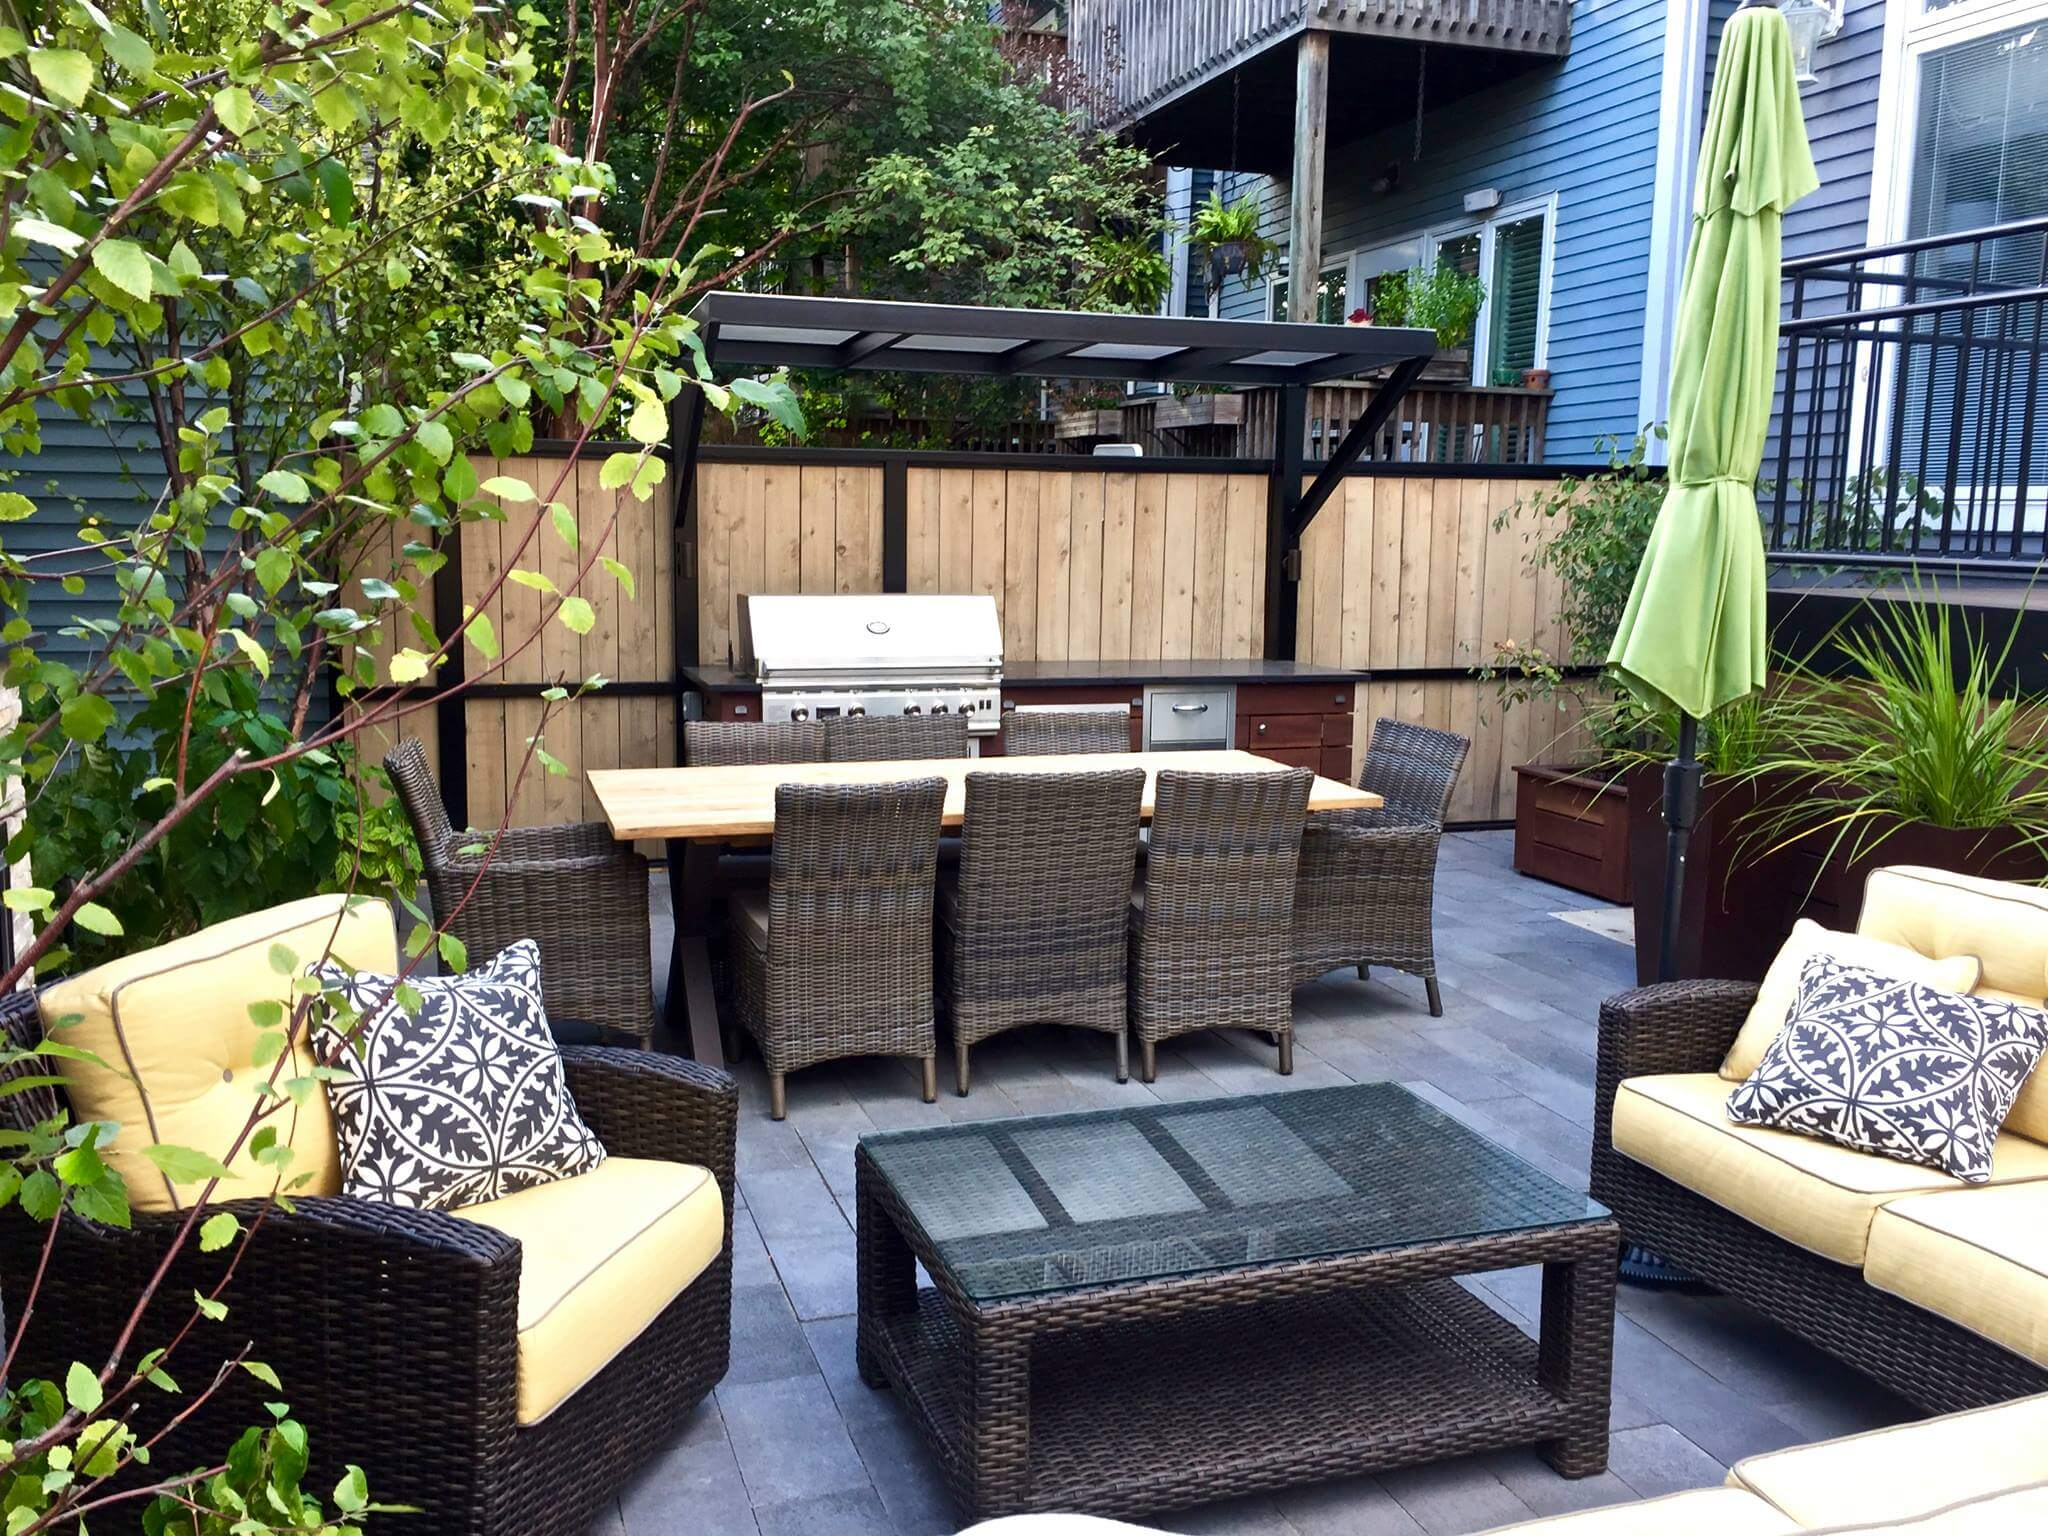 Patio With A Fireplace And A Gas Grill In Chicago. on Outdoor Grill Patio id=29492